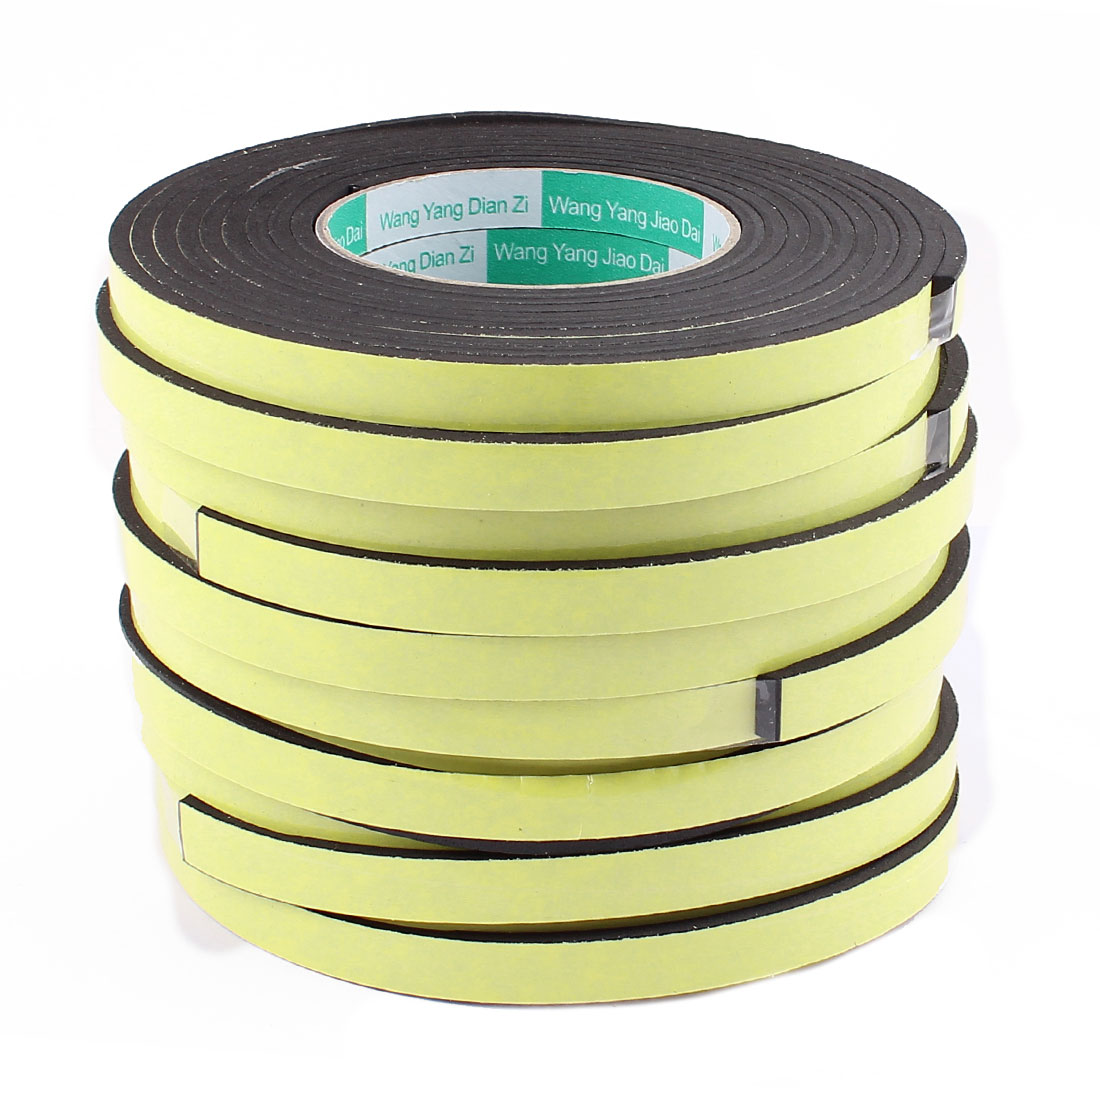 10 Pcs 12mmx4mm Single Sided Sponge Tape Adhesive Sticker Foam Glue Strip Sealing 3 Meters 10Ft